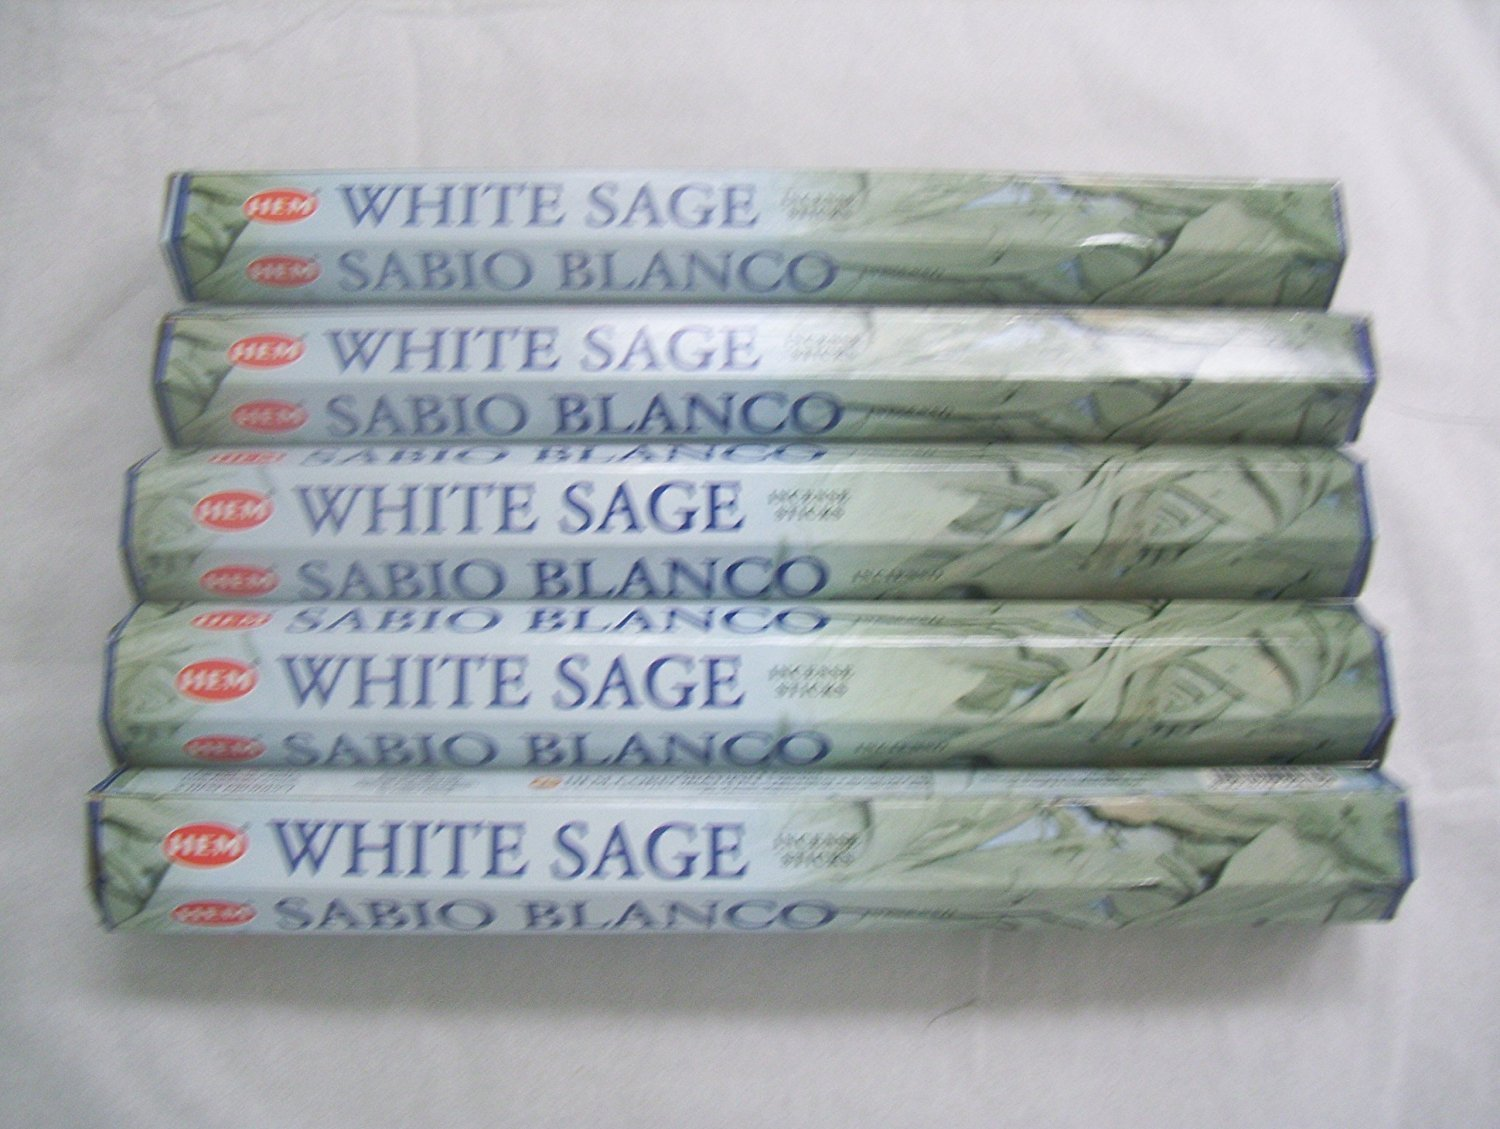 Hem White Sage 100 Incense Sticks (5  Packs Of 20 Sticks) by Hem